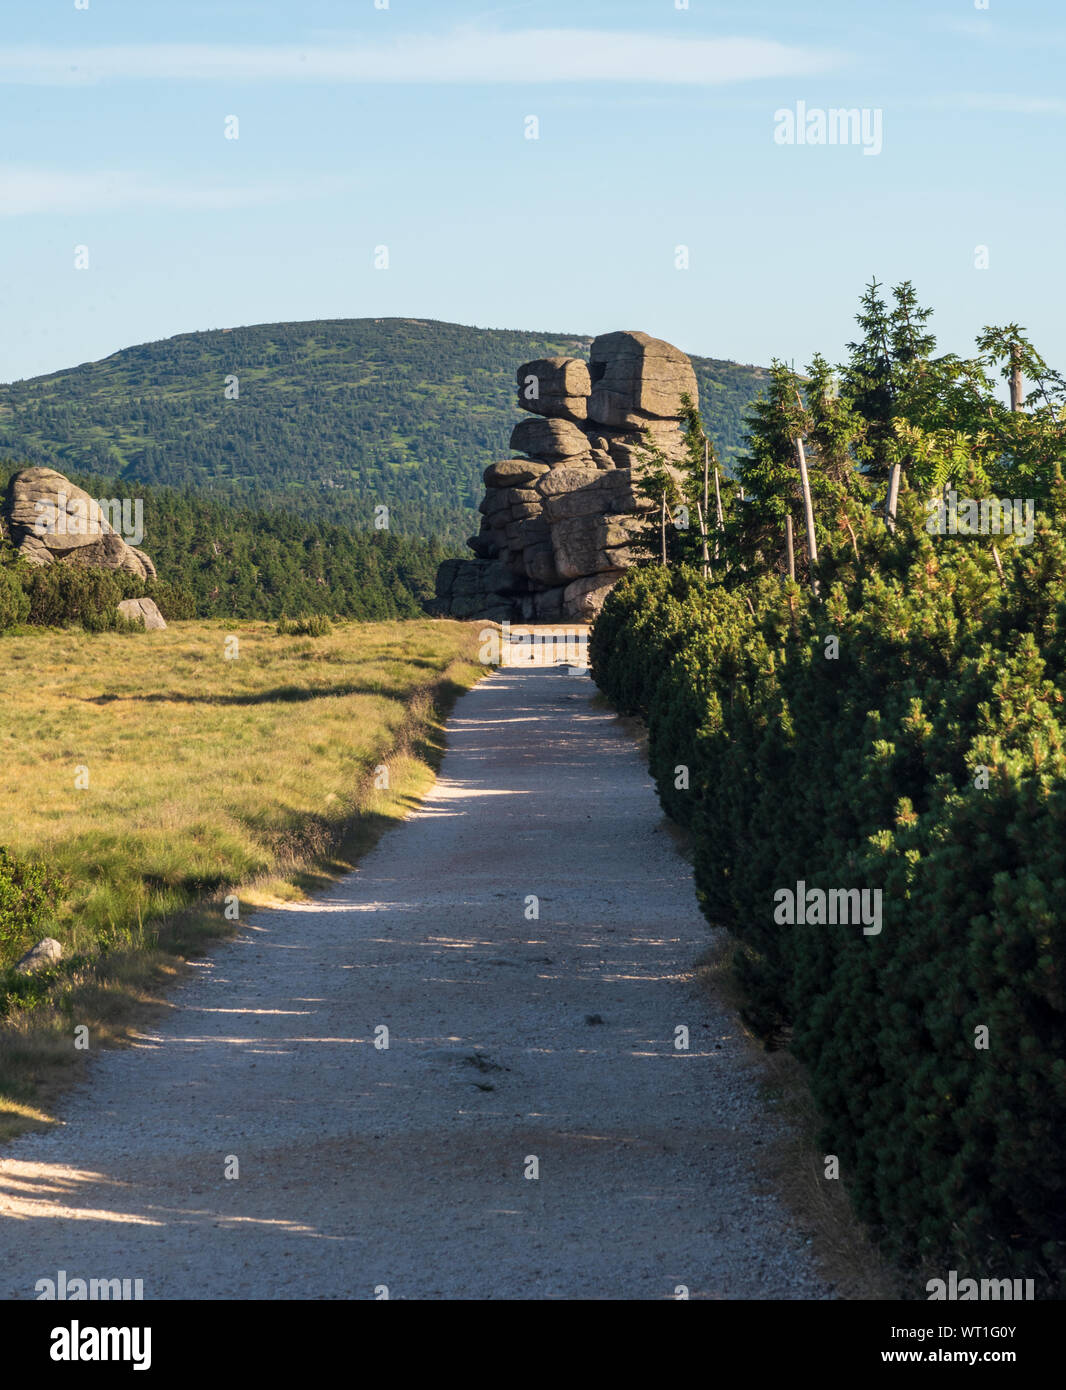 Svinske kameny rocks bellow Szrenica hill in Krkonose mountains on czech - polish borders during summer evening with clear sky Stock Photo